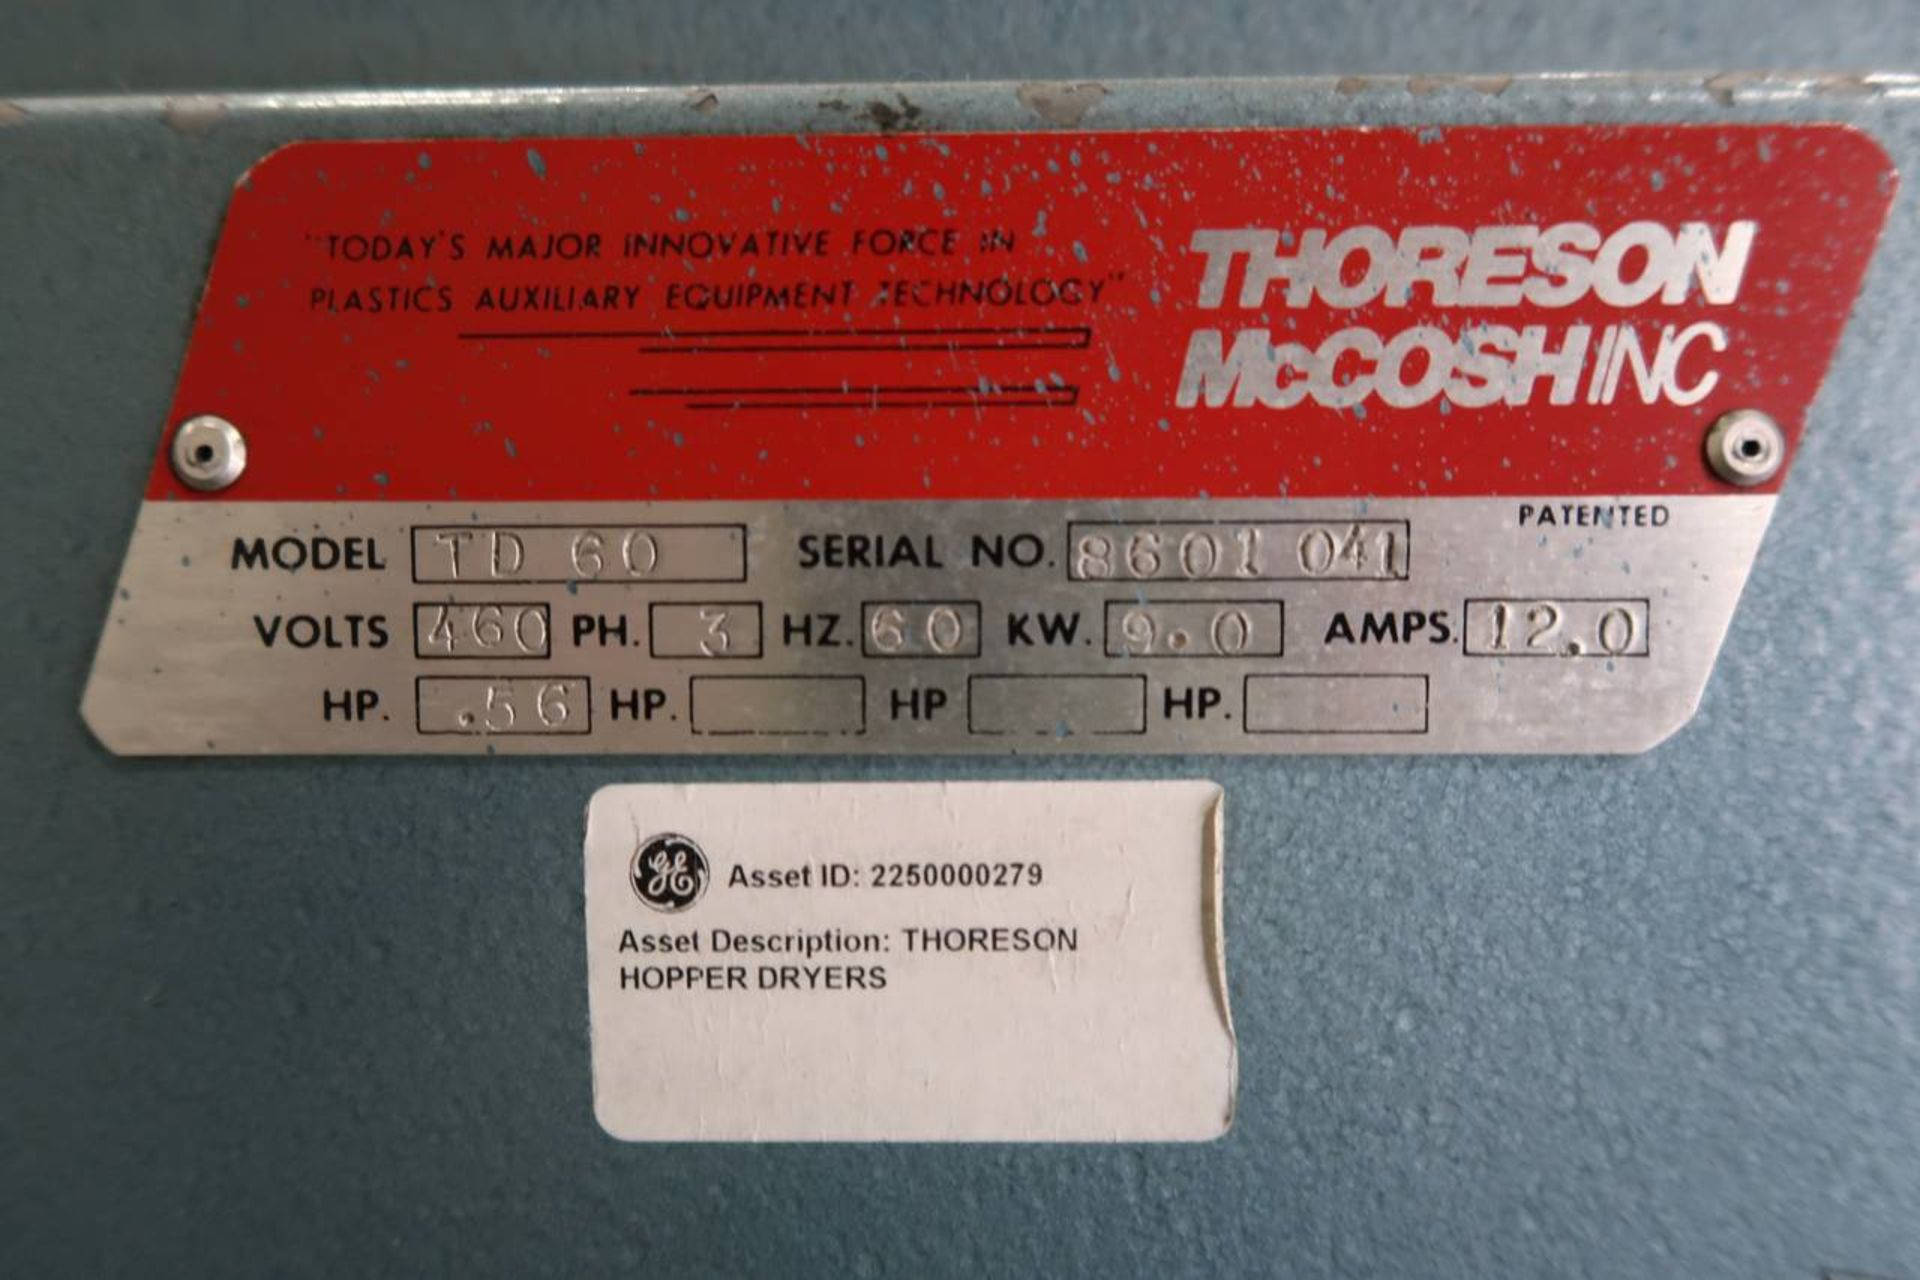 1986 HPM 400-TP-20 400-Ton Thermo Plastic Injection Molding Press - Image 39 of 40